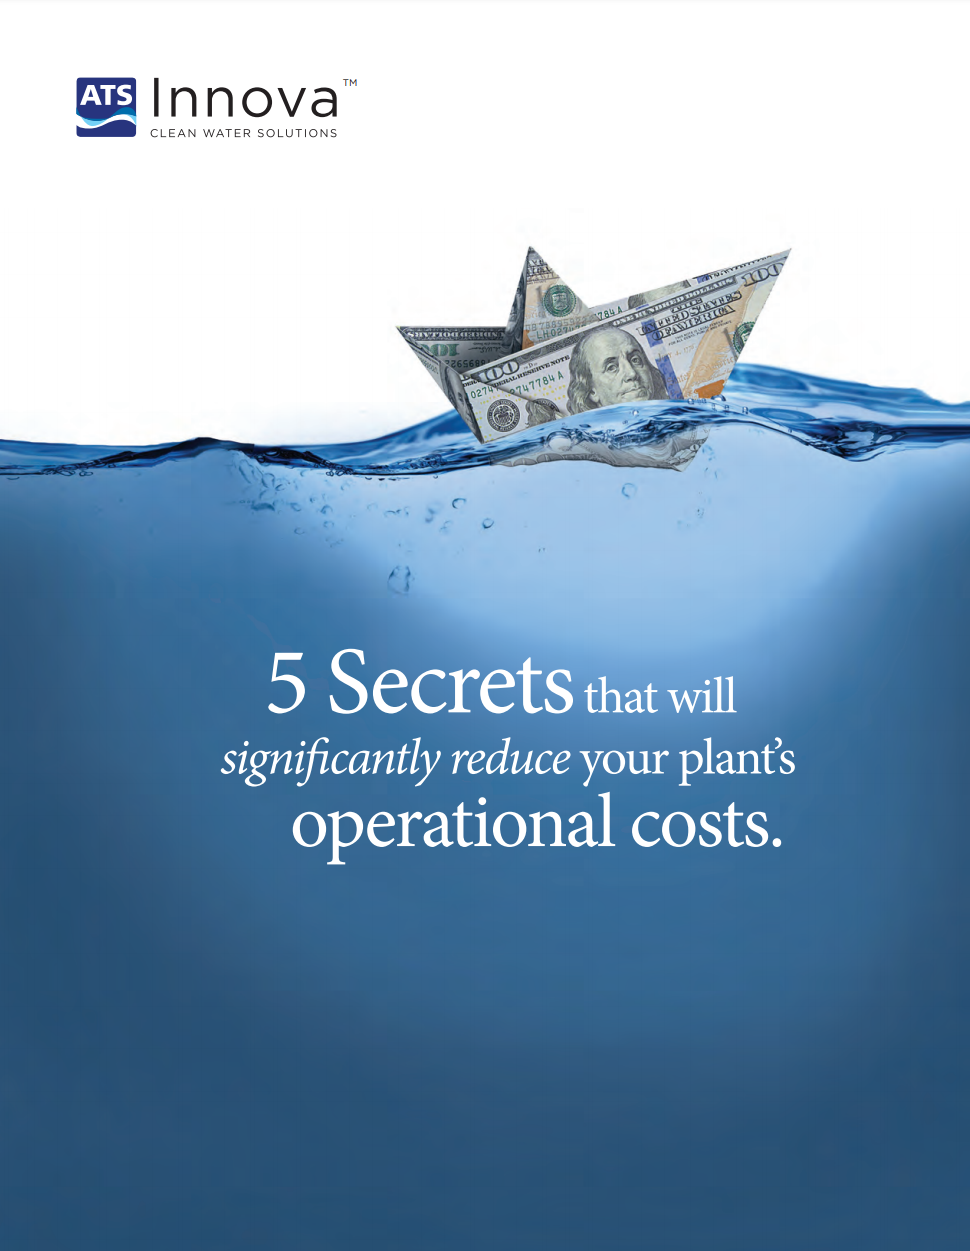 """The first page of """"Five Secrets that will significantly reduce your plant's operational costs."""""""